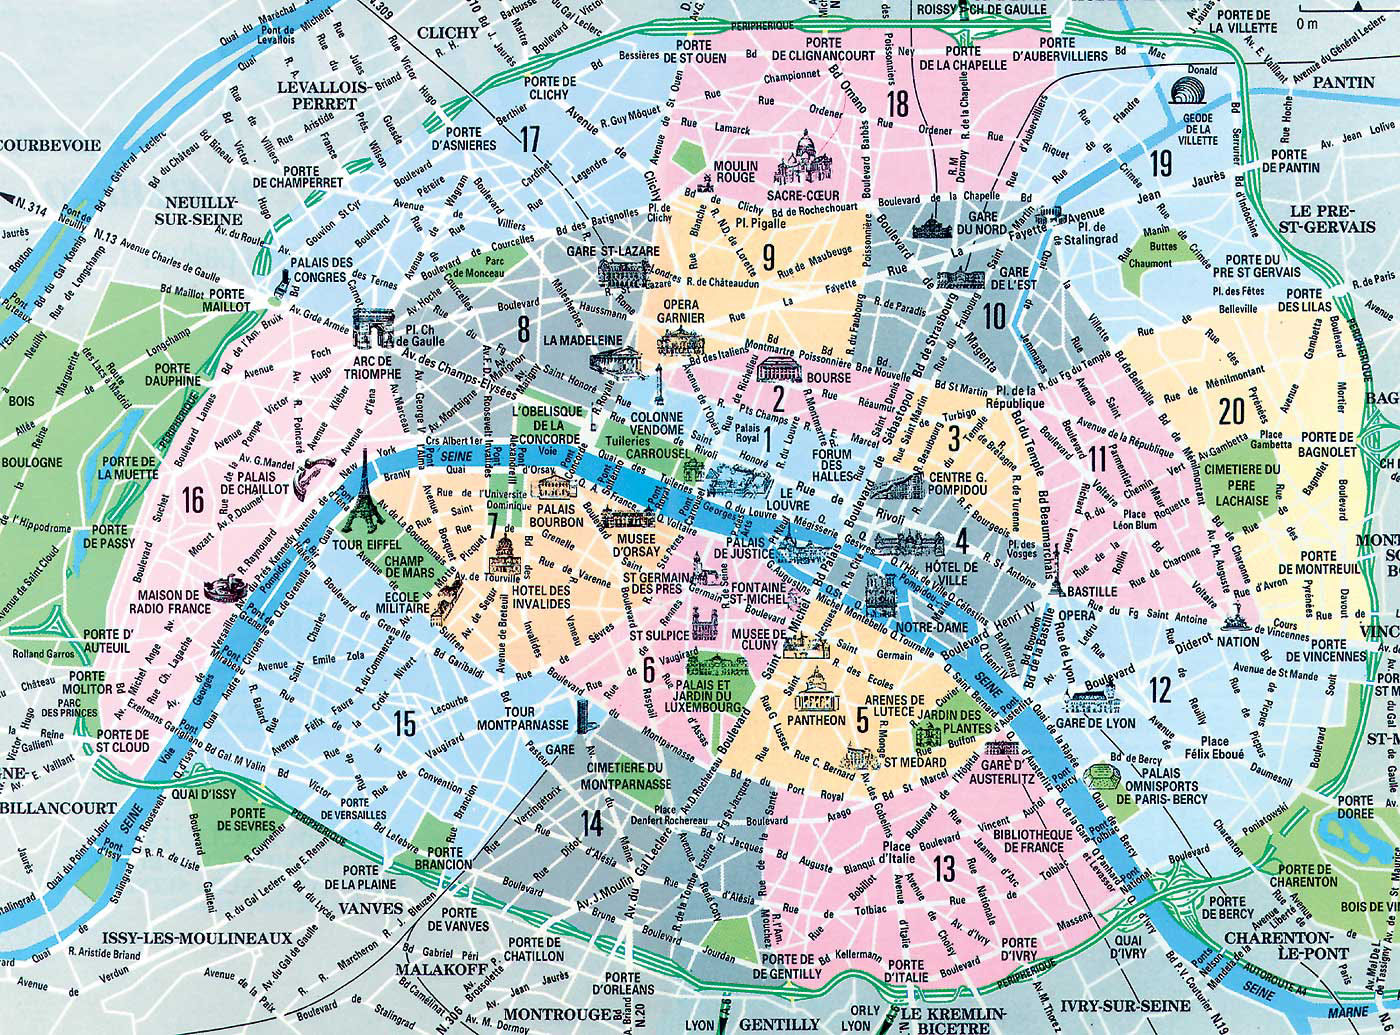 Paris Arrondissement Map Map of Paris Arrondissements. Top arrondissement sights. Paris Arrondissement Map